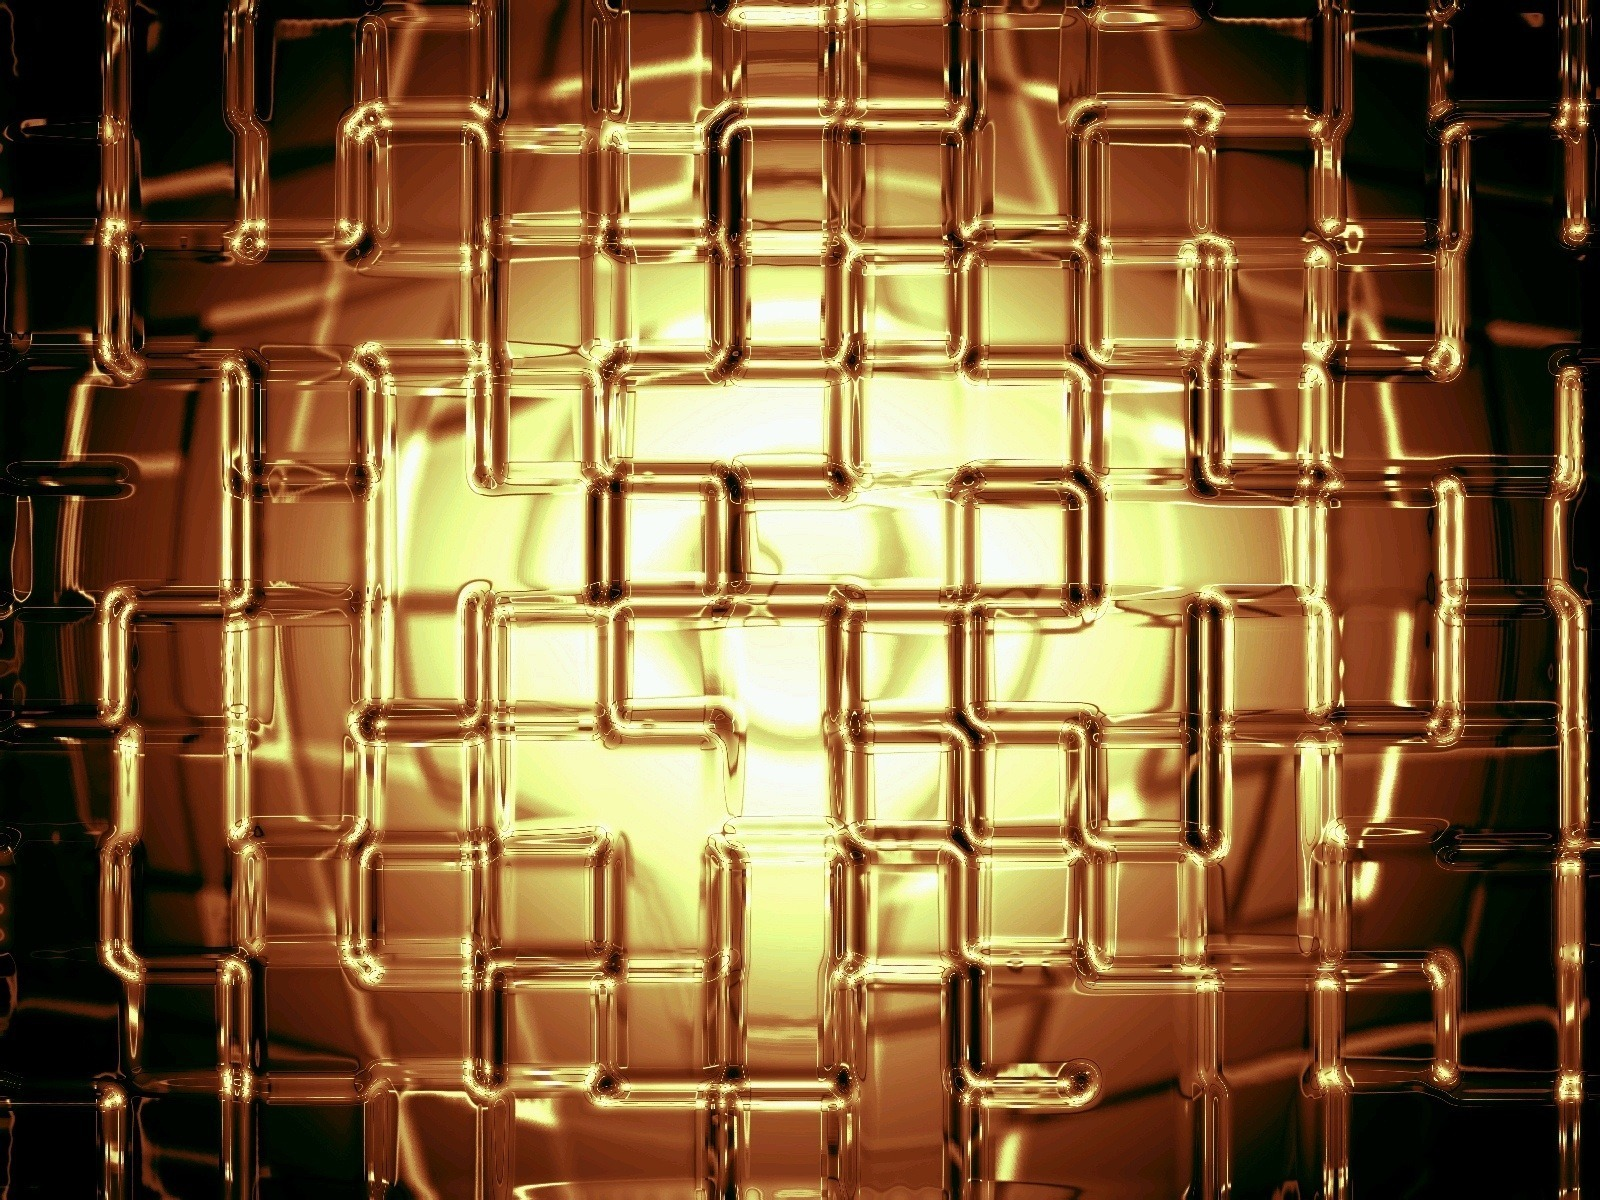 Gold wall wallpaper abstract 3d wallpapers in jpg format for Gold wallpaper for walls